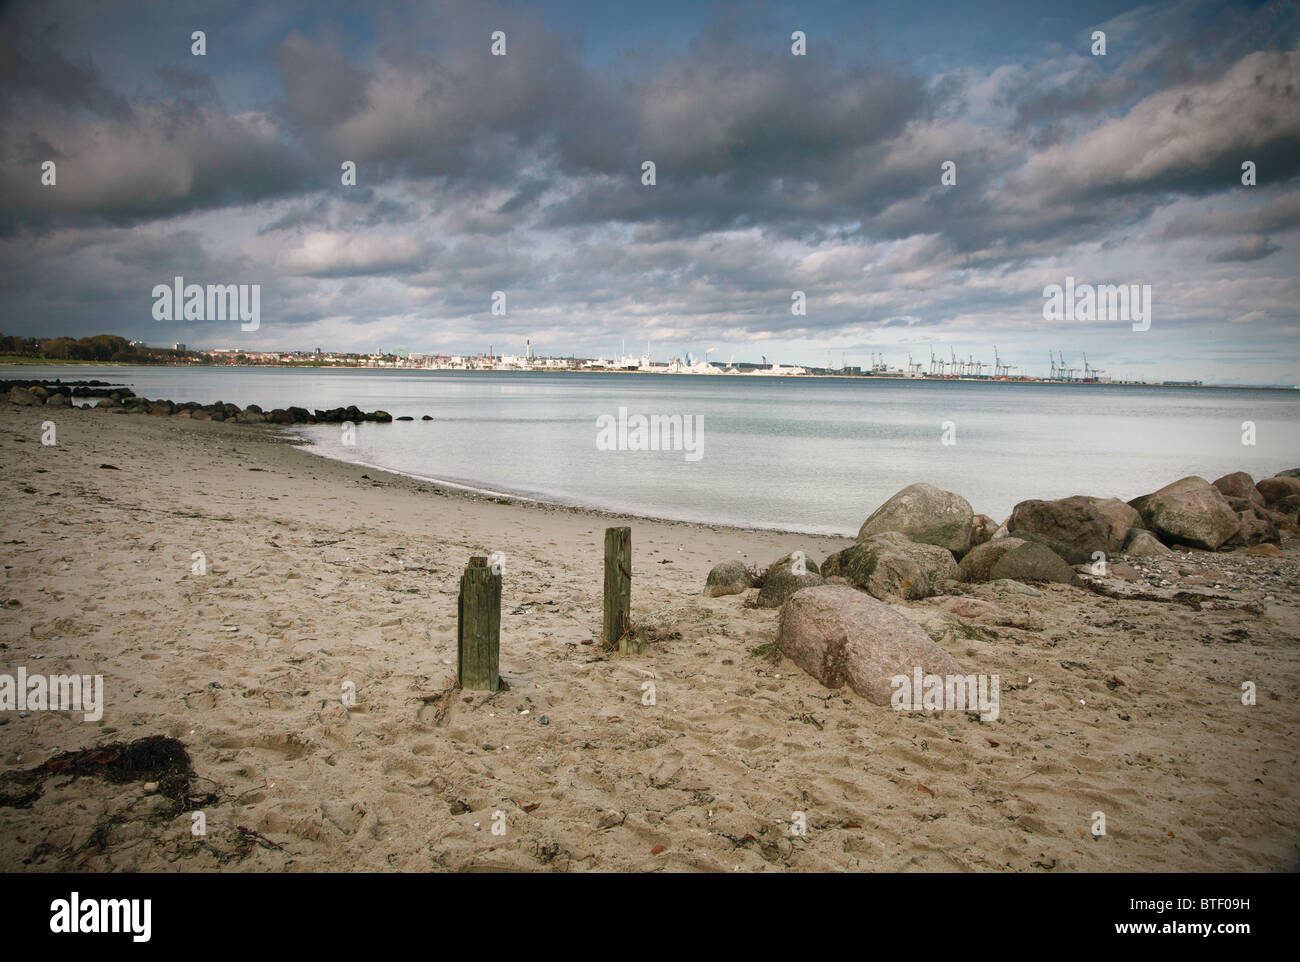 Aarhis beach with town in background - Stock Image